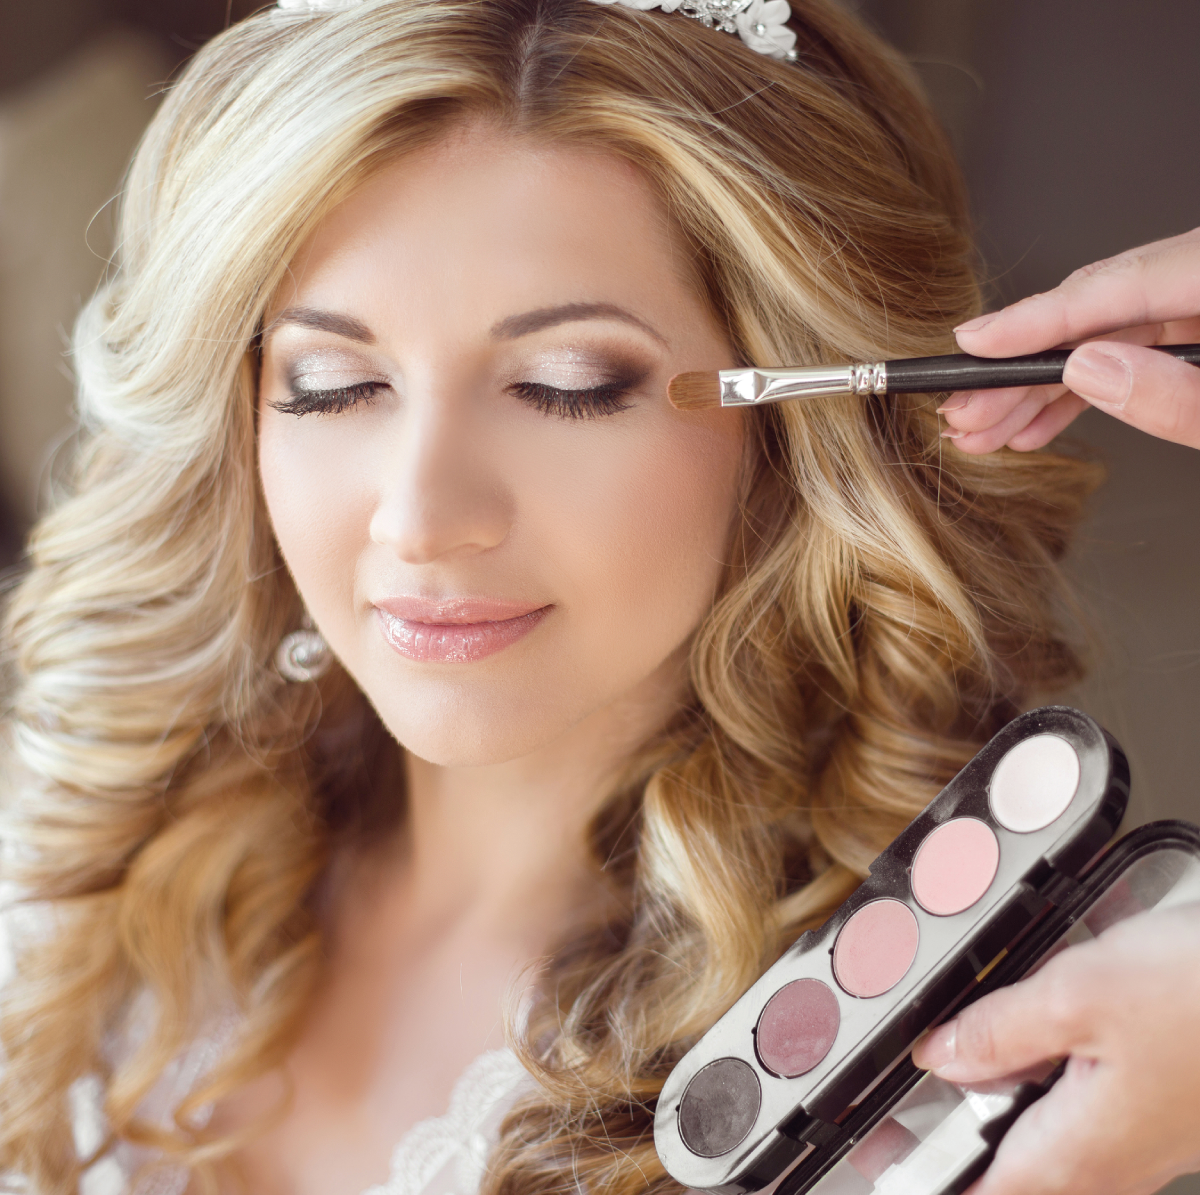 Makeup Application Services